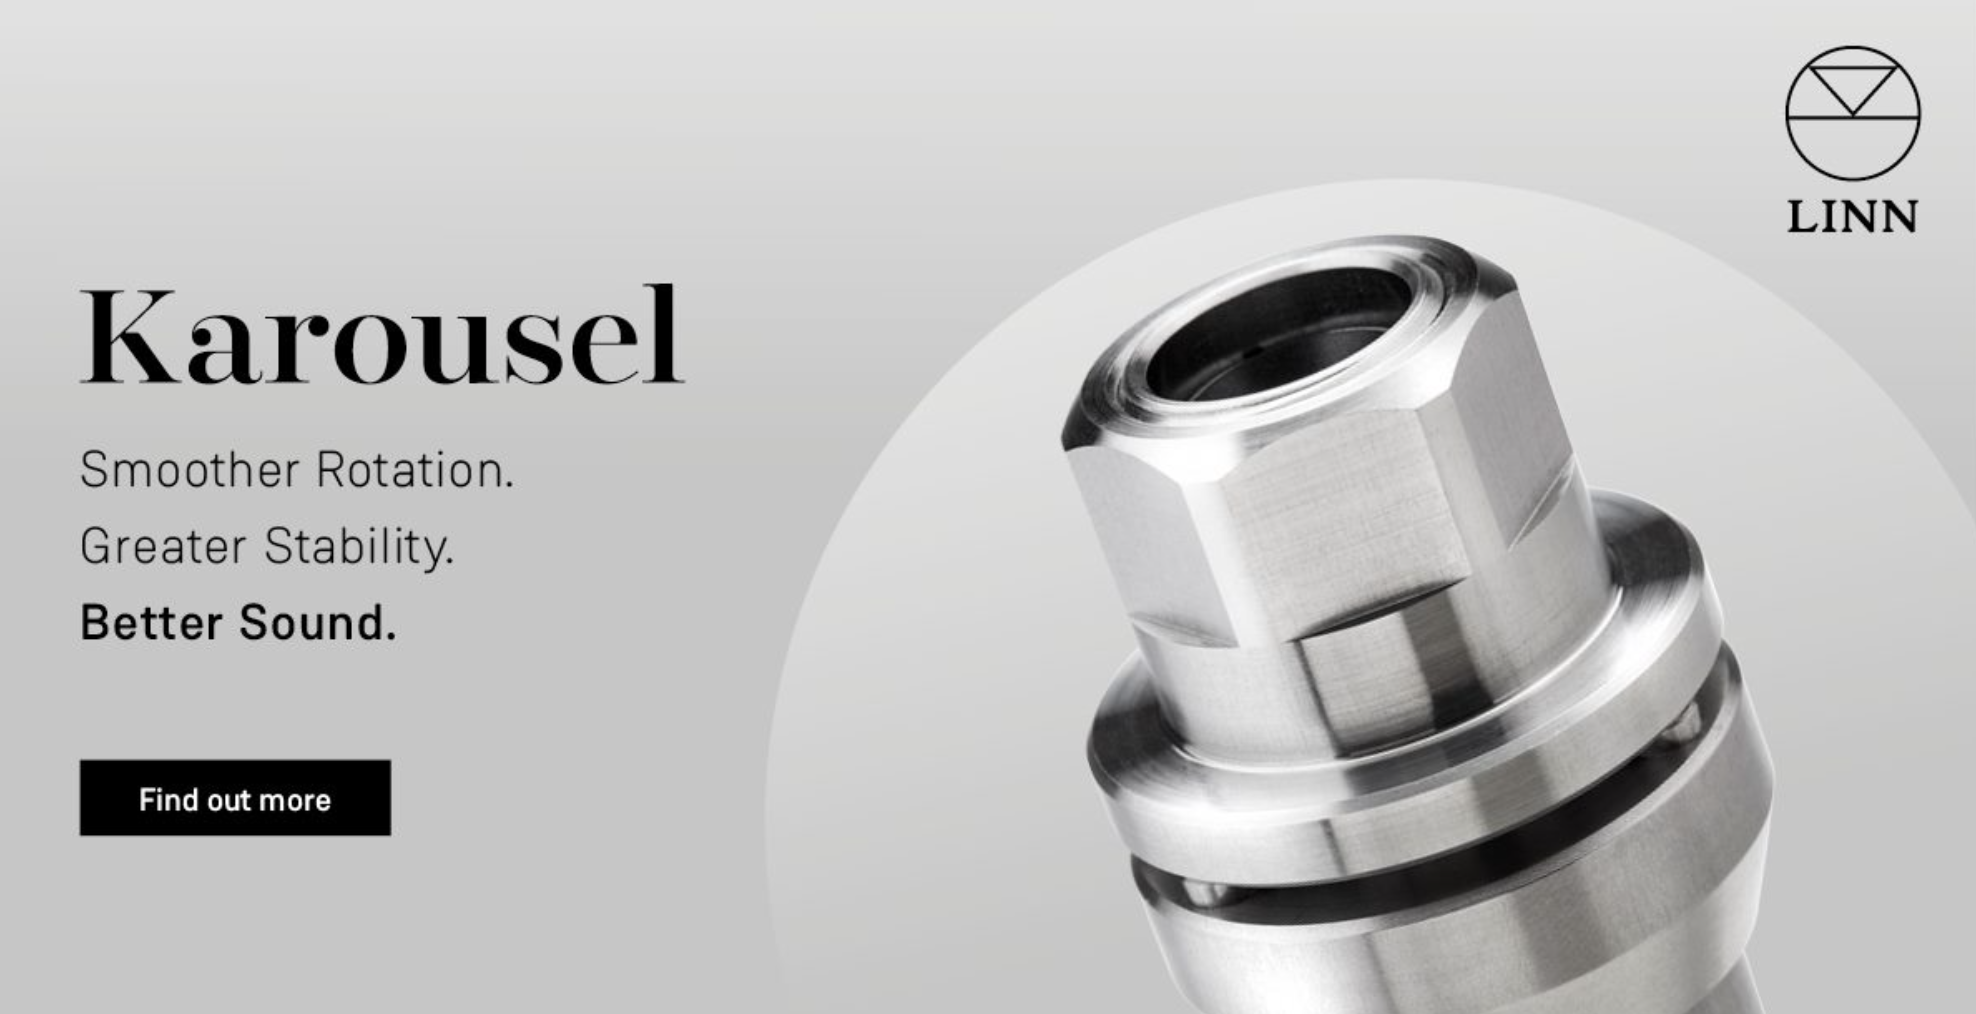 New Linn LP12 Karousel Bearing Announced for 2020